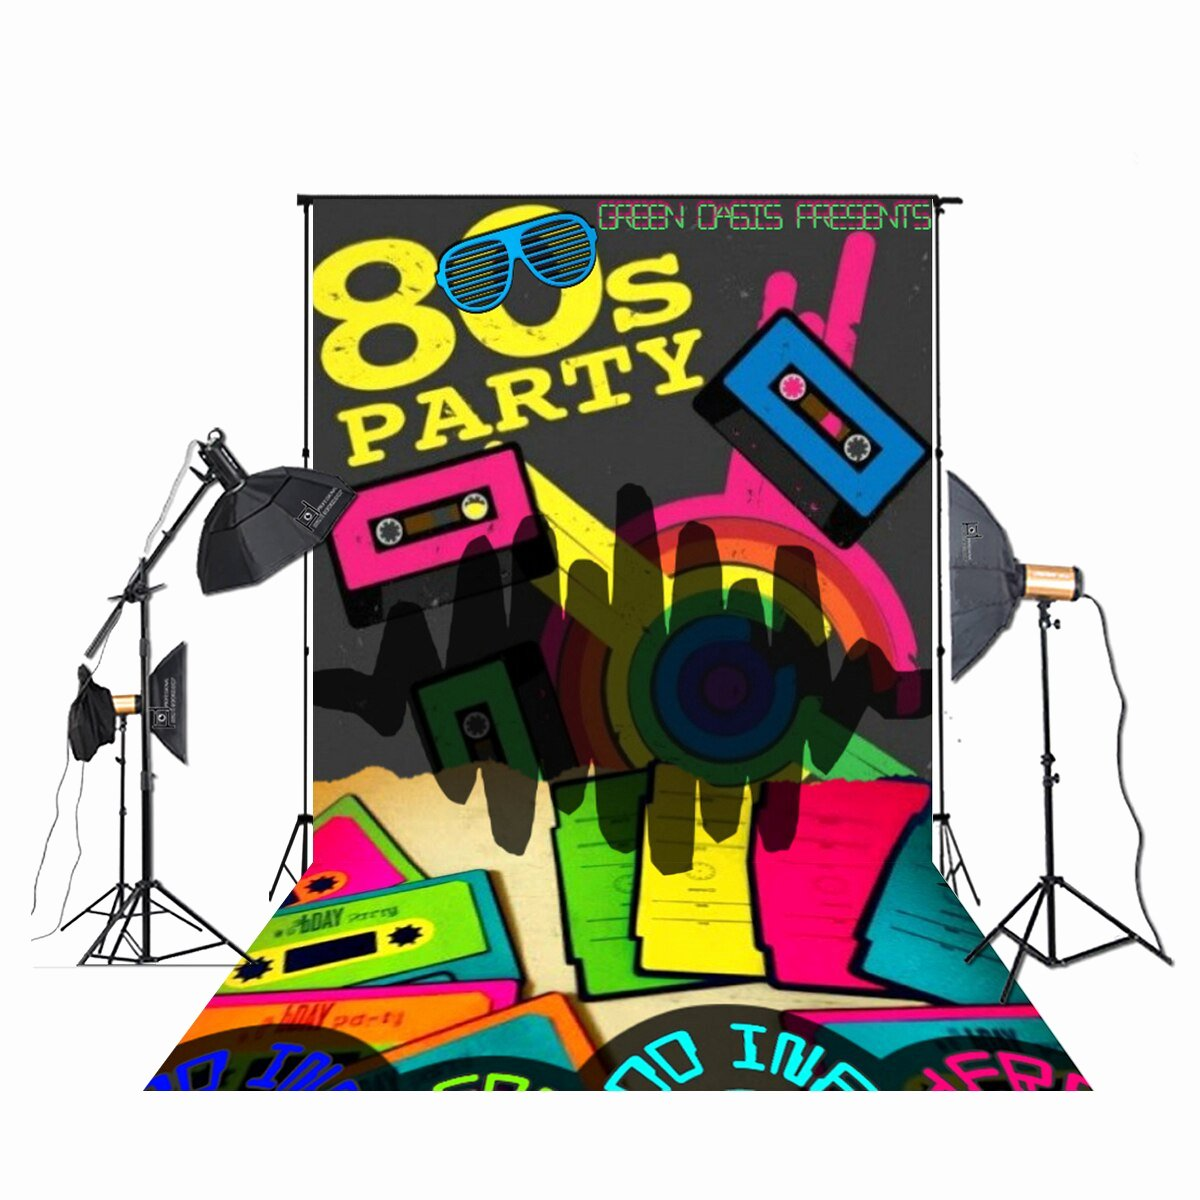 Hip Hop Graffiti Backdrop Beautiful Huayi 80s Party Backdrop 80 S Hip Hop Graffiti Graphy